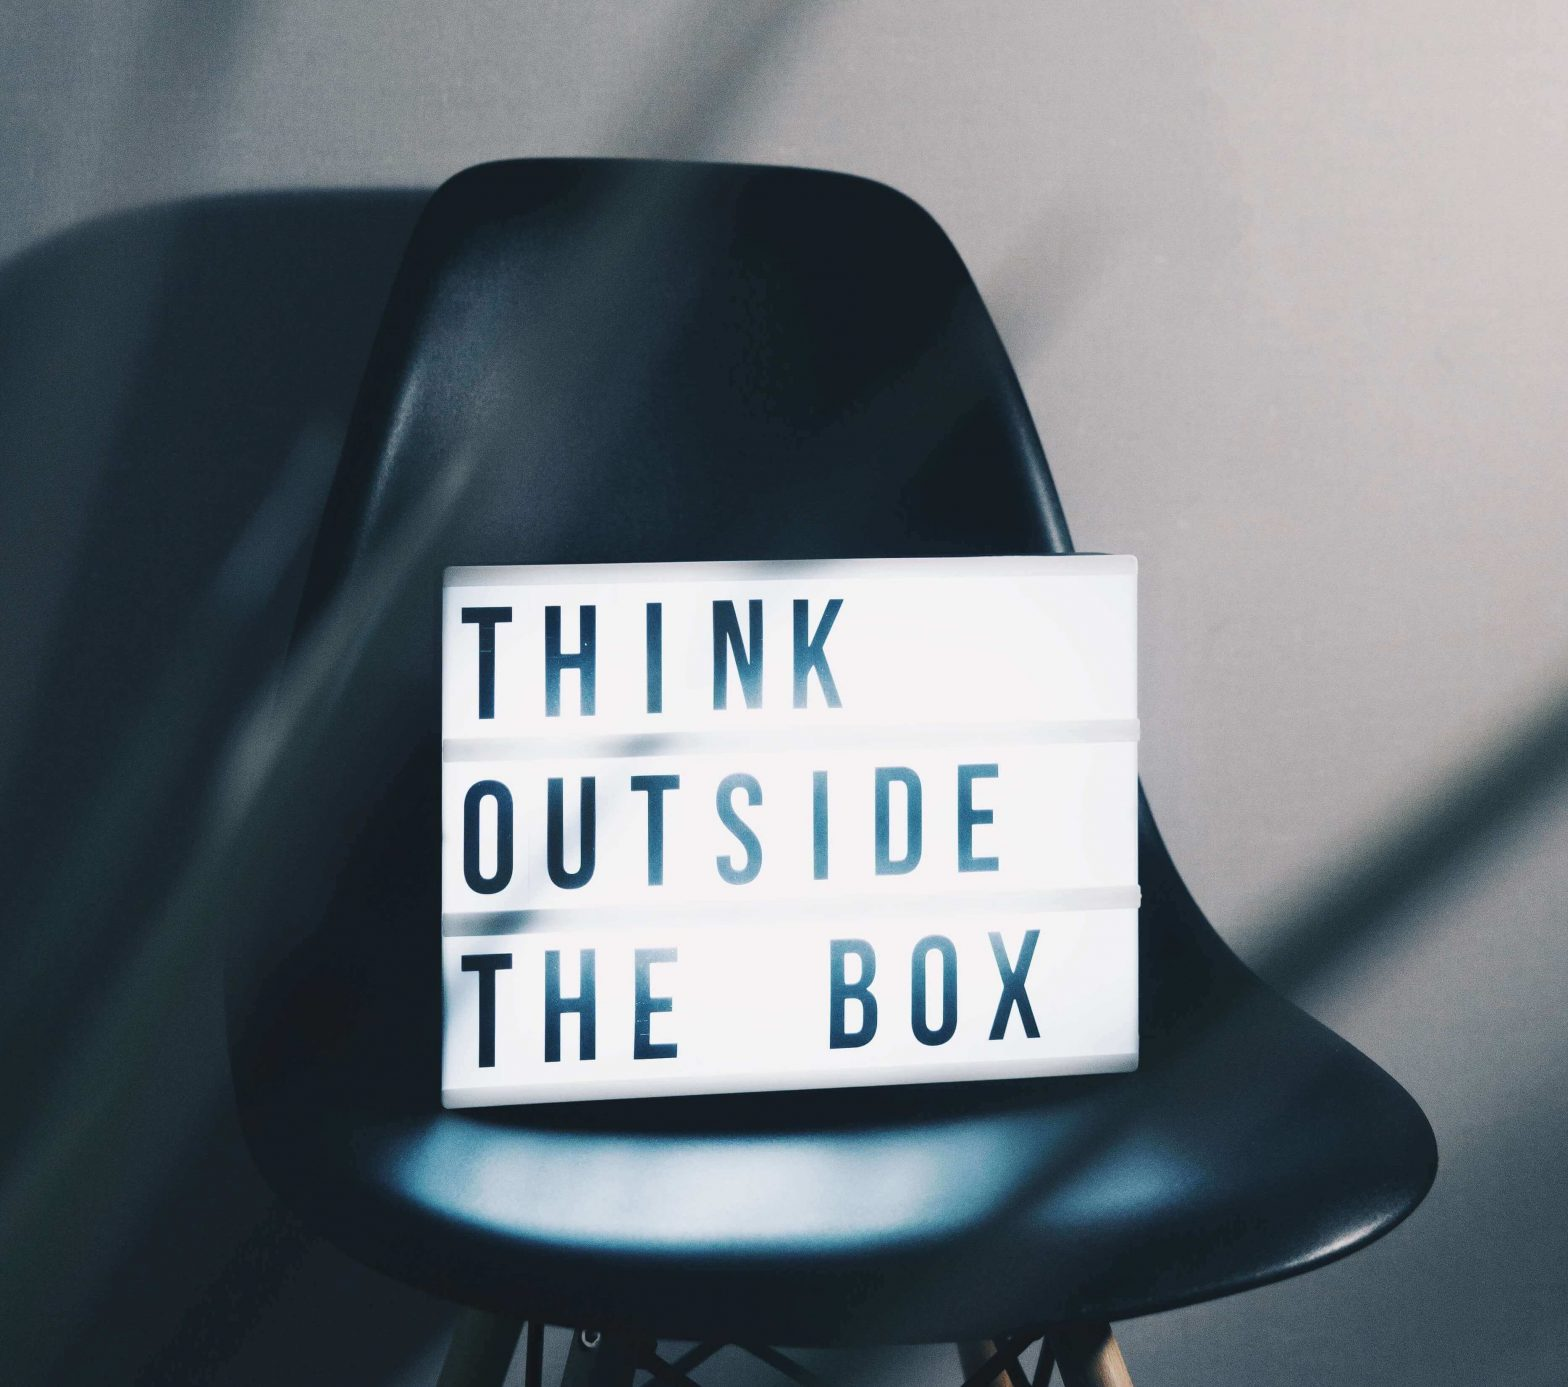 Thinking outside the box, or divergent thinking, allows for a creative mind.